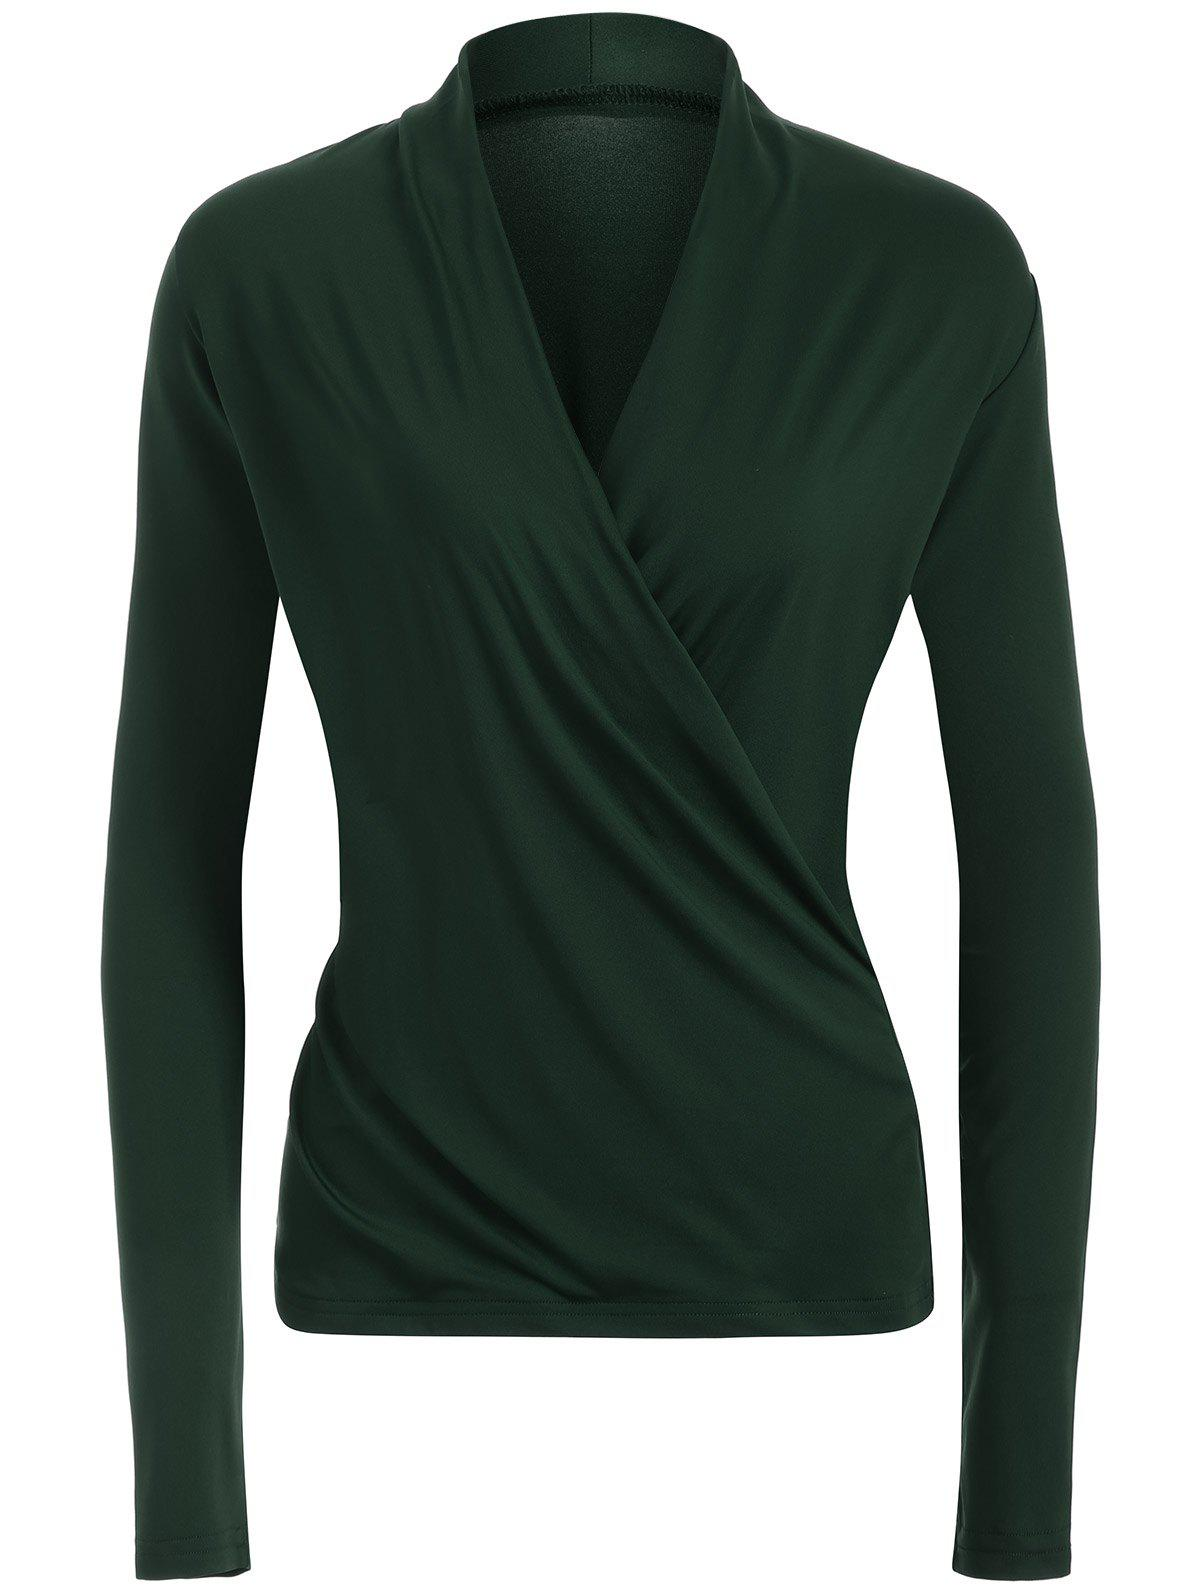 Surplice Stretchy Slimming T-Shirt - BLACKISH GREEN S